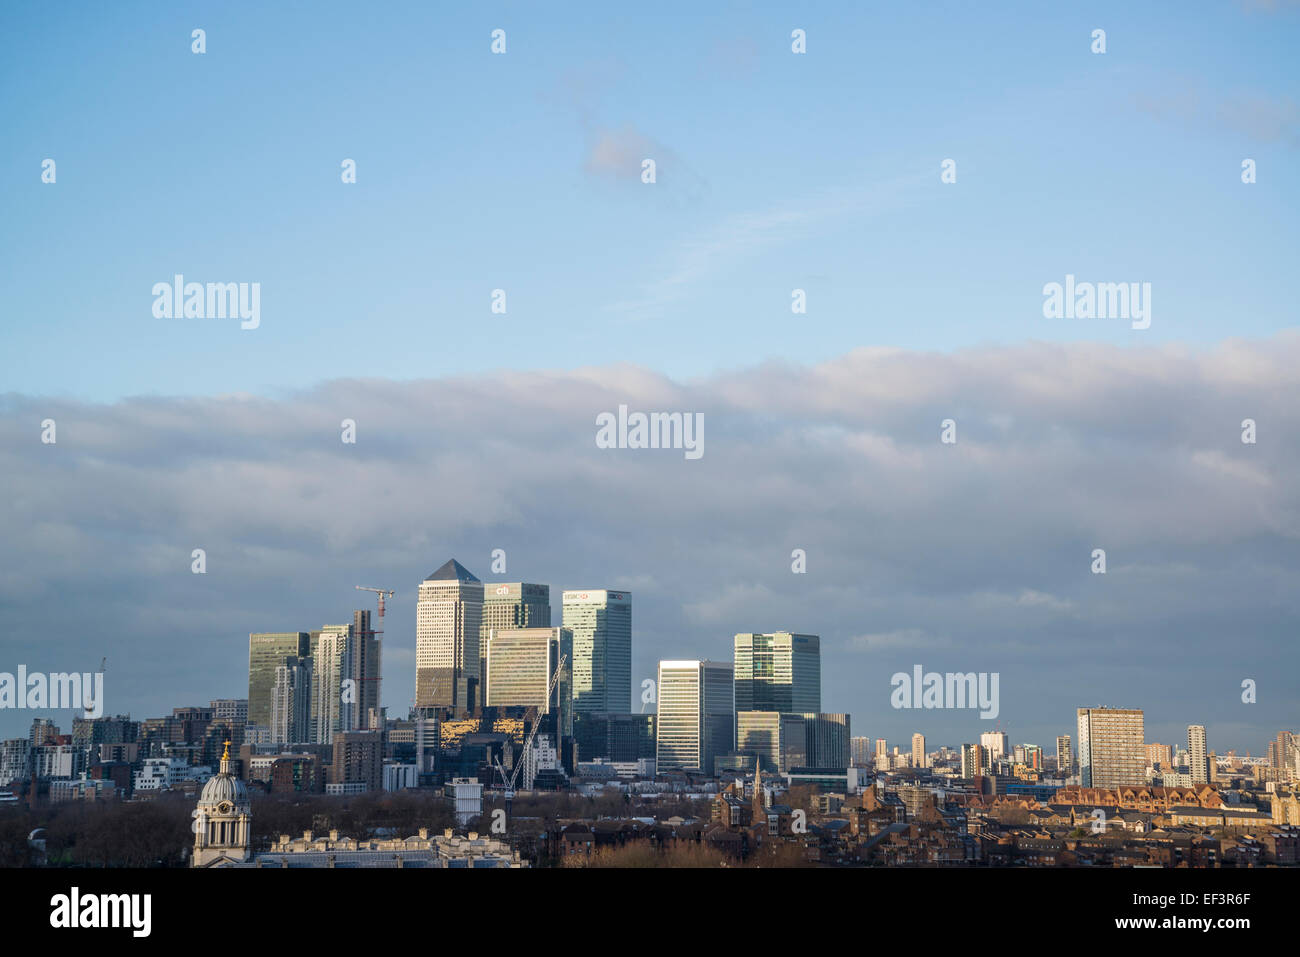 Canary Wharf on the Isle of Dogs from the Greenwich Royal Observatory, London, Uk - Stock Image